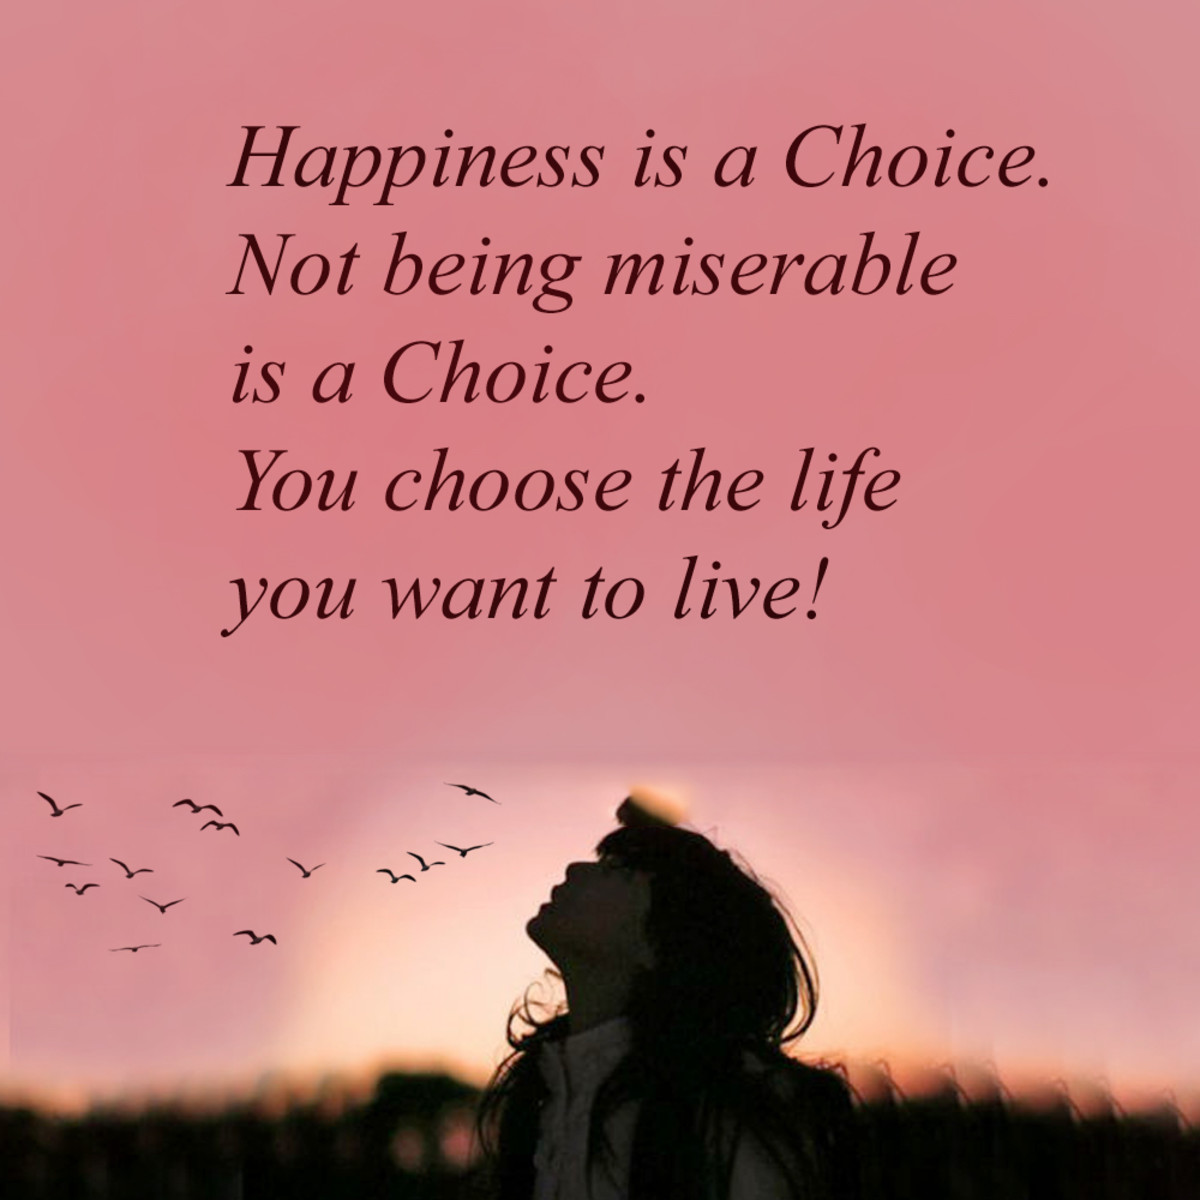 If you were placed in a position to consider the kind of life you want to live, you would choose a happy one. Who wouldn't and why not? But it will not come to you automatically, you will have to put forth the effort to make a choice to be happy.